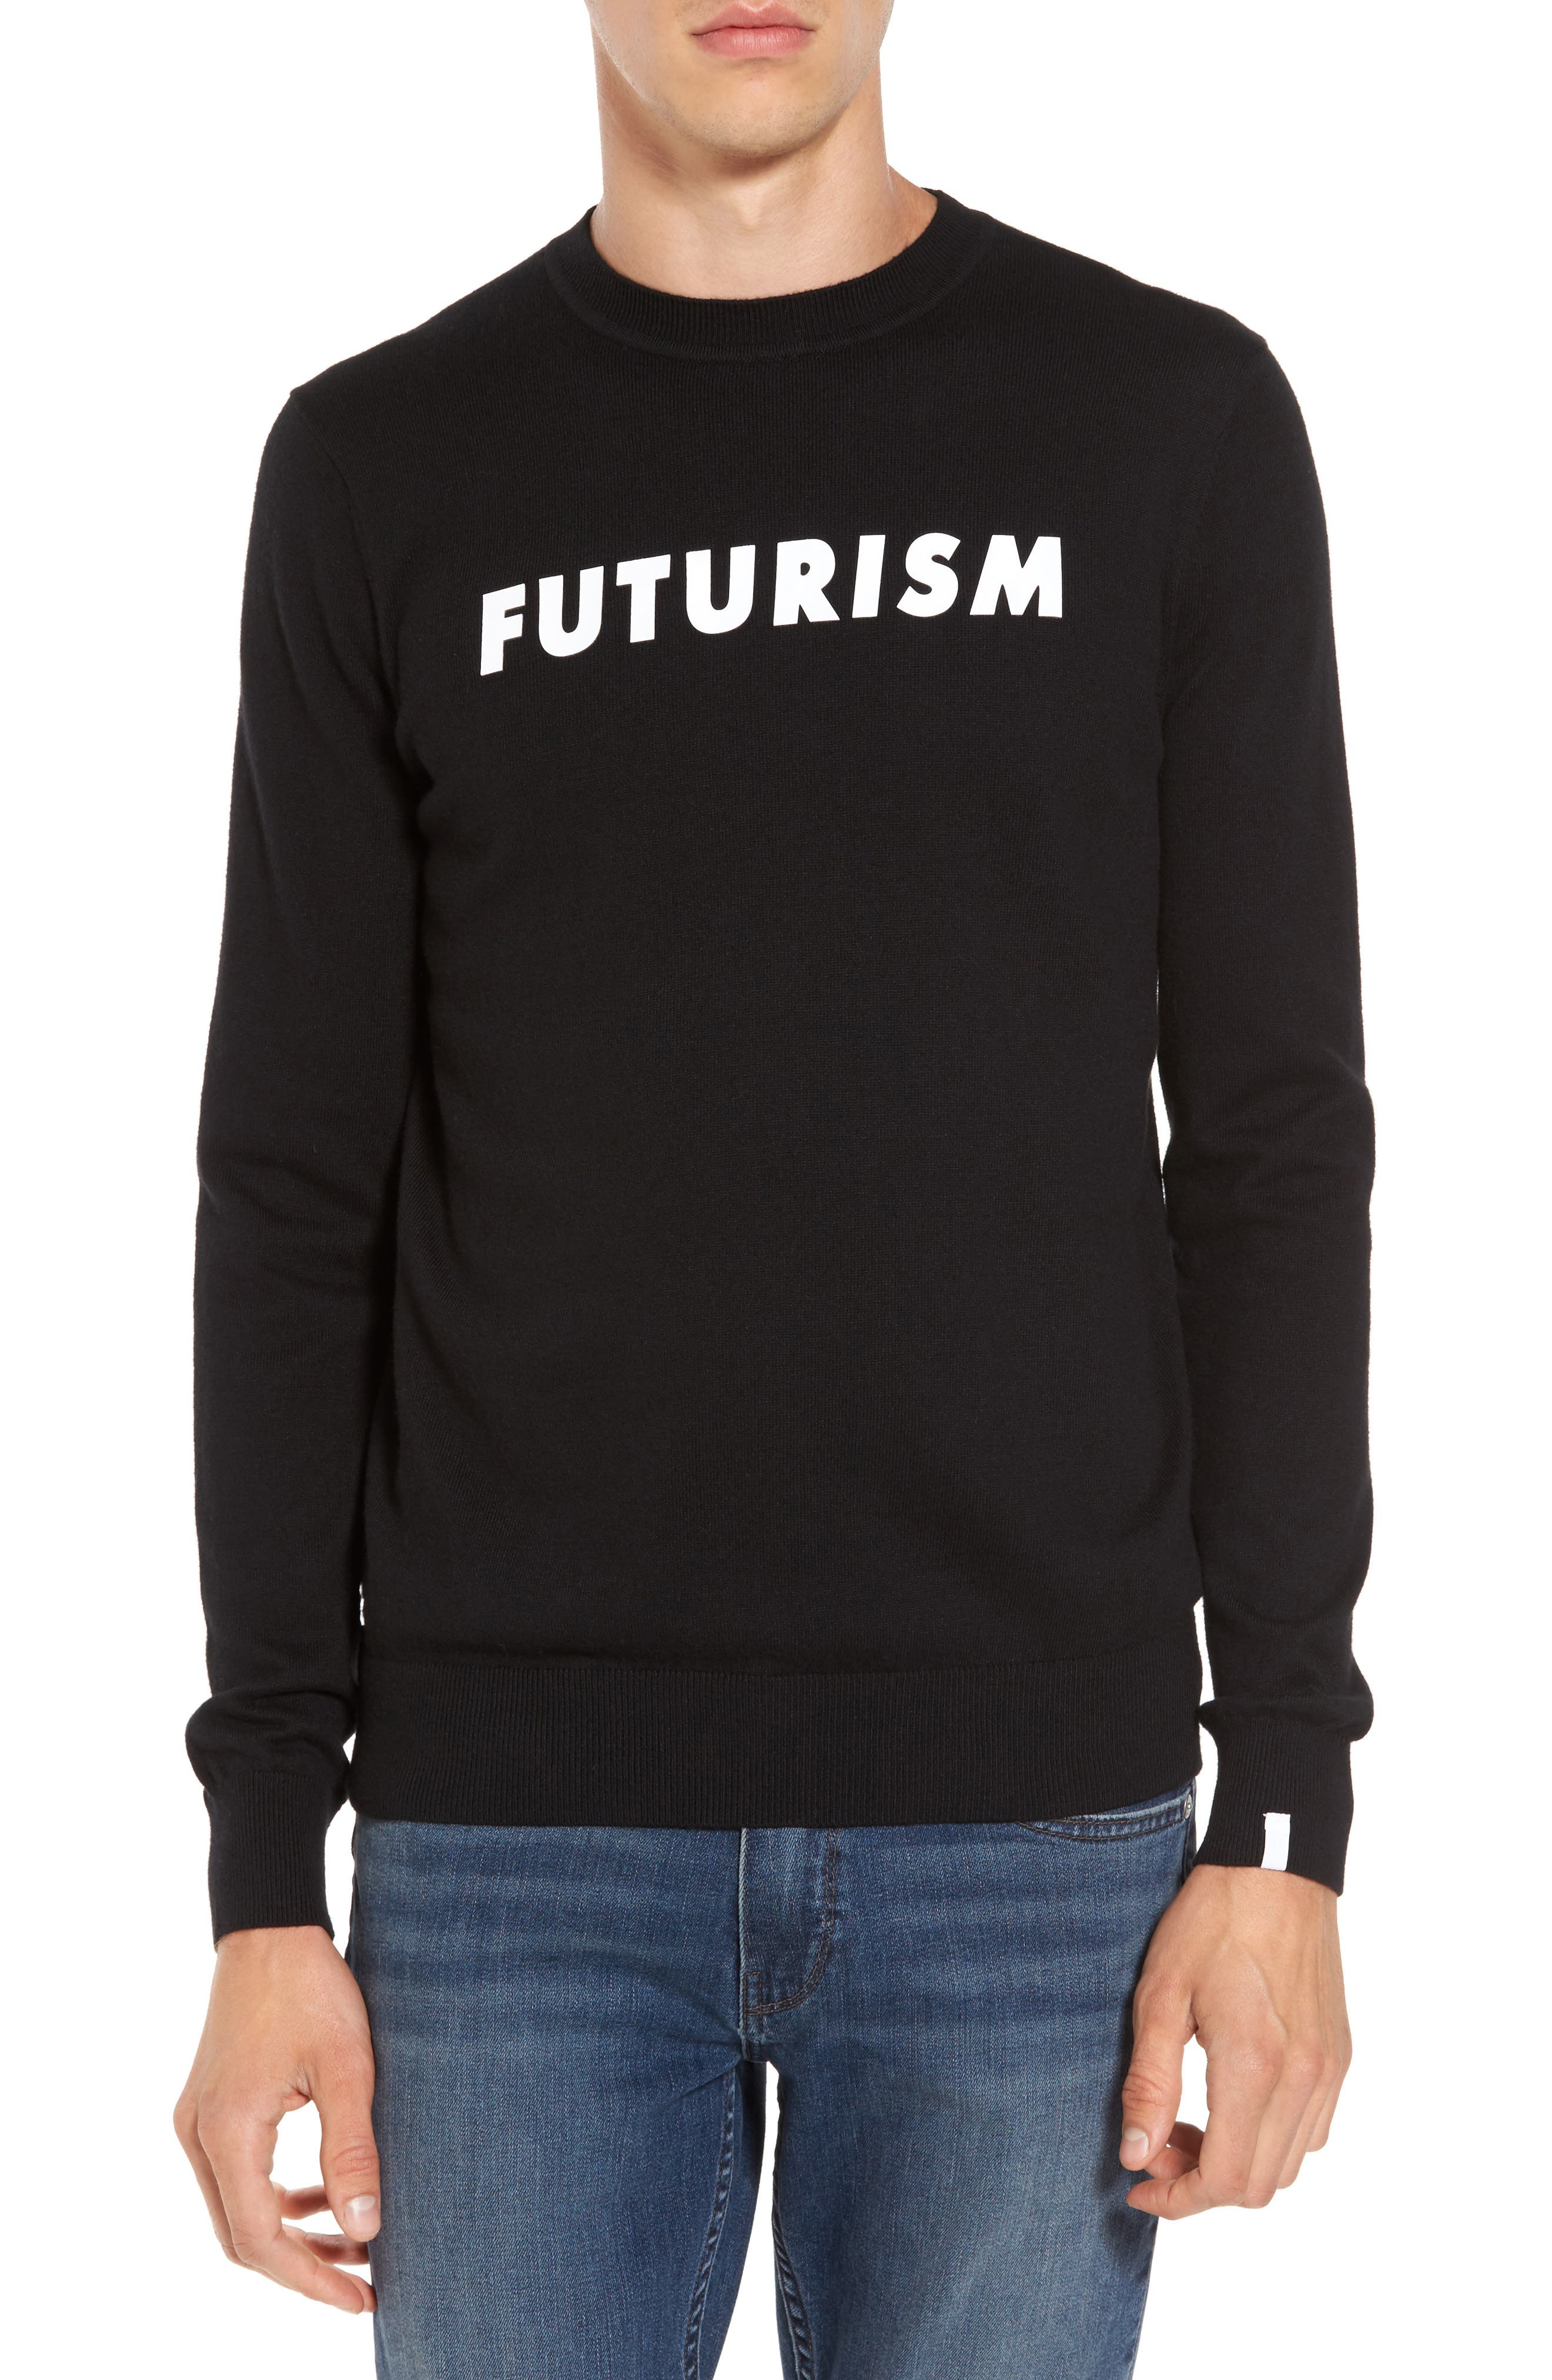 Alternate Image 1 Selected - Lacoste Futurism Graphic Sweater